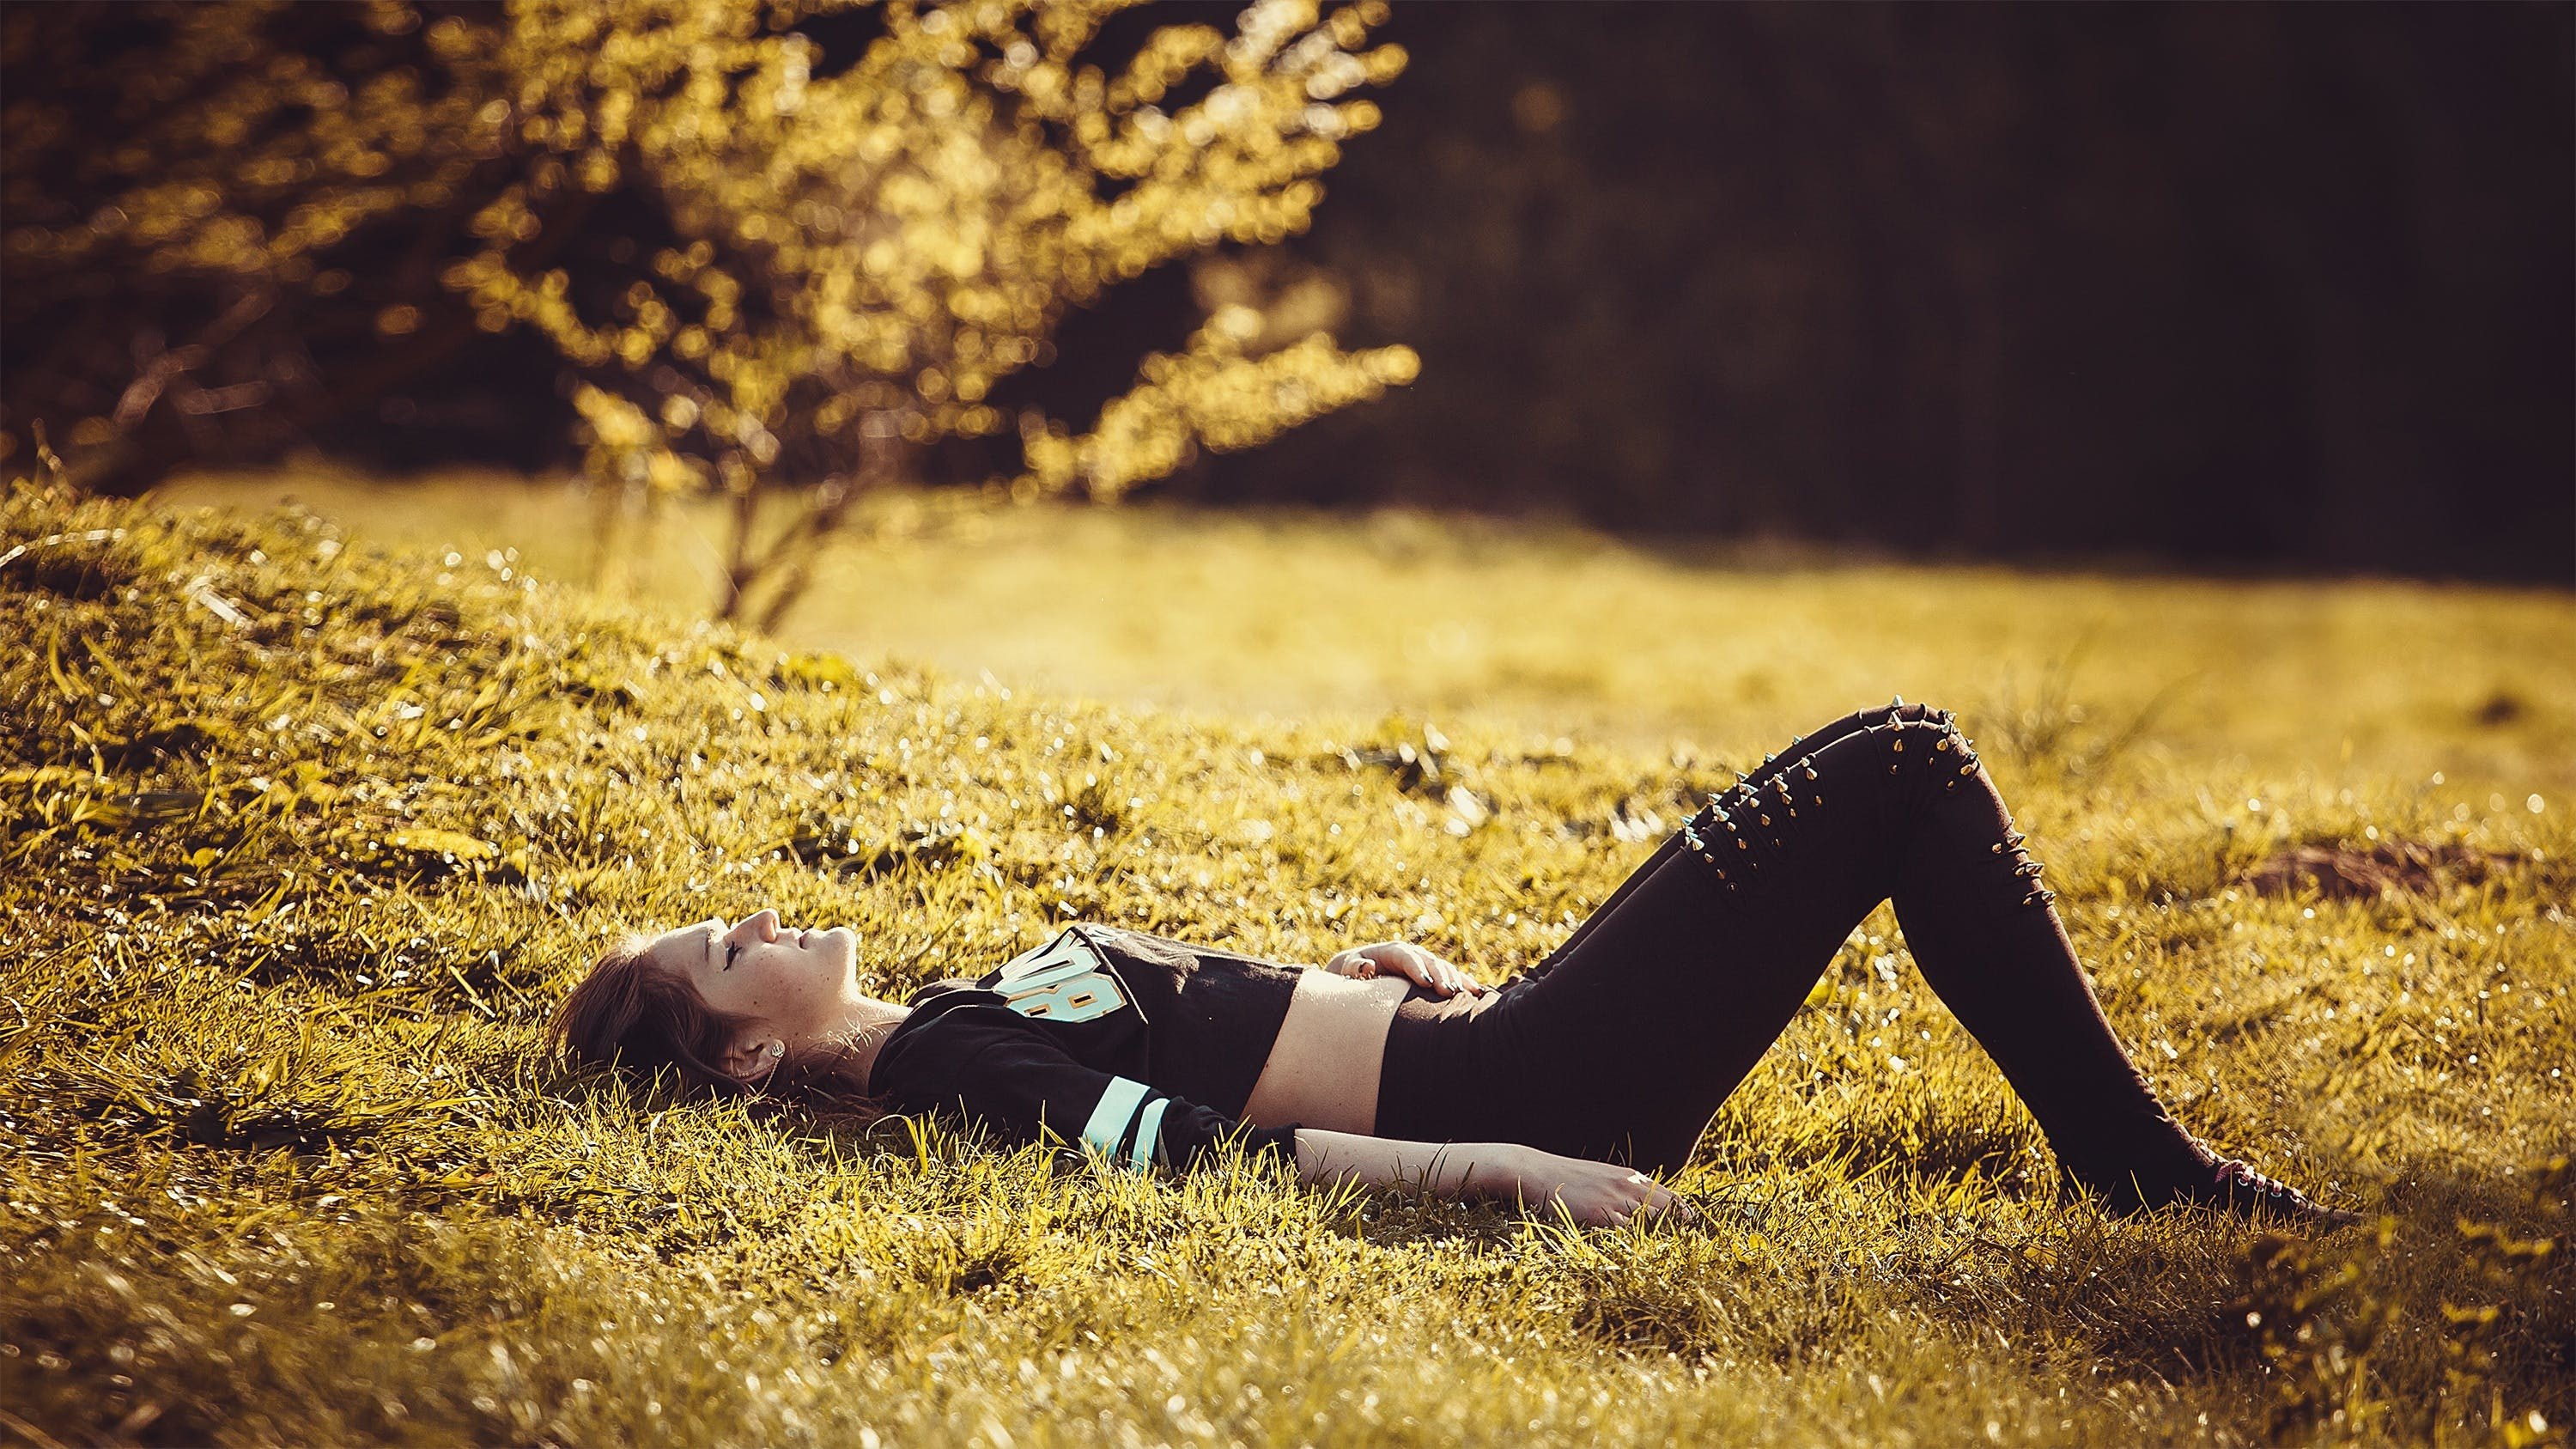 Woman Lying on Grass during Day